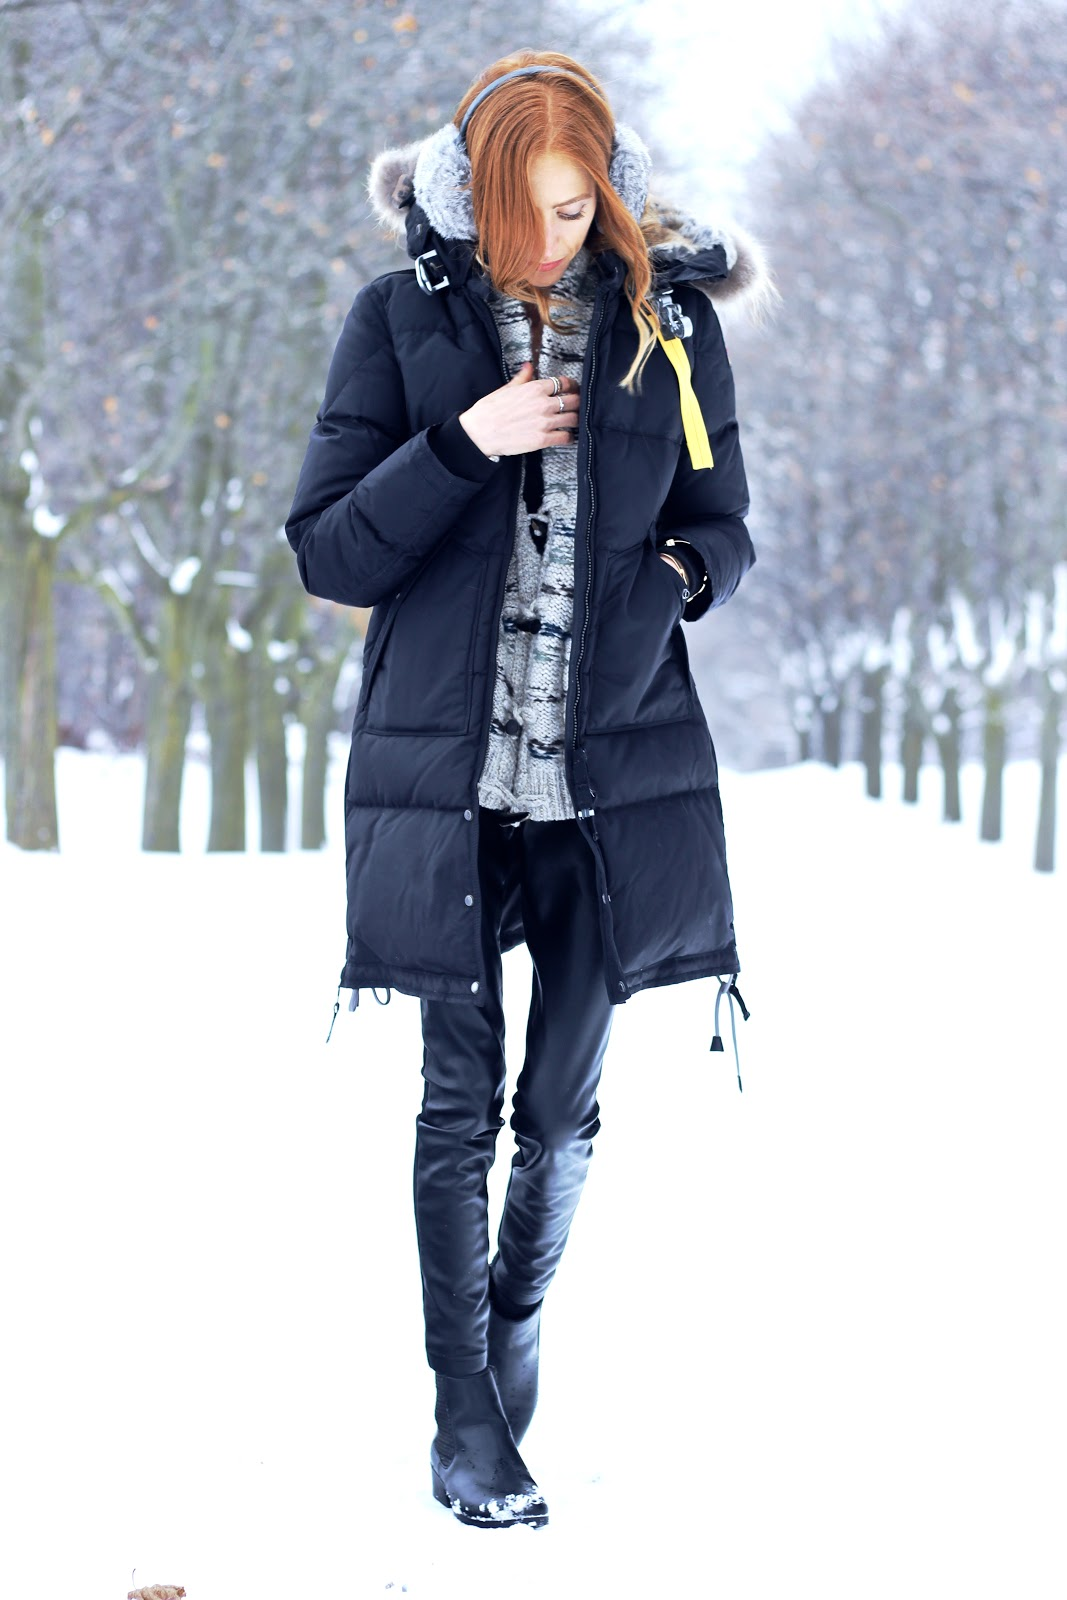 ... Parajumpers Womens Long Bear parka, Cougar COPE boots, Canadian Winter